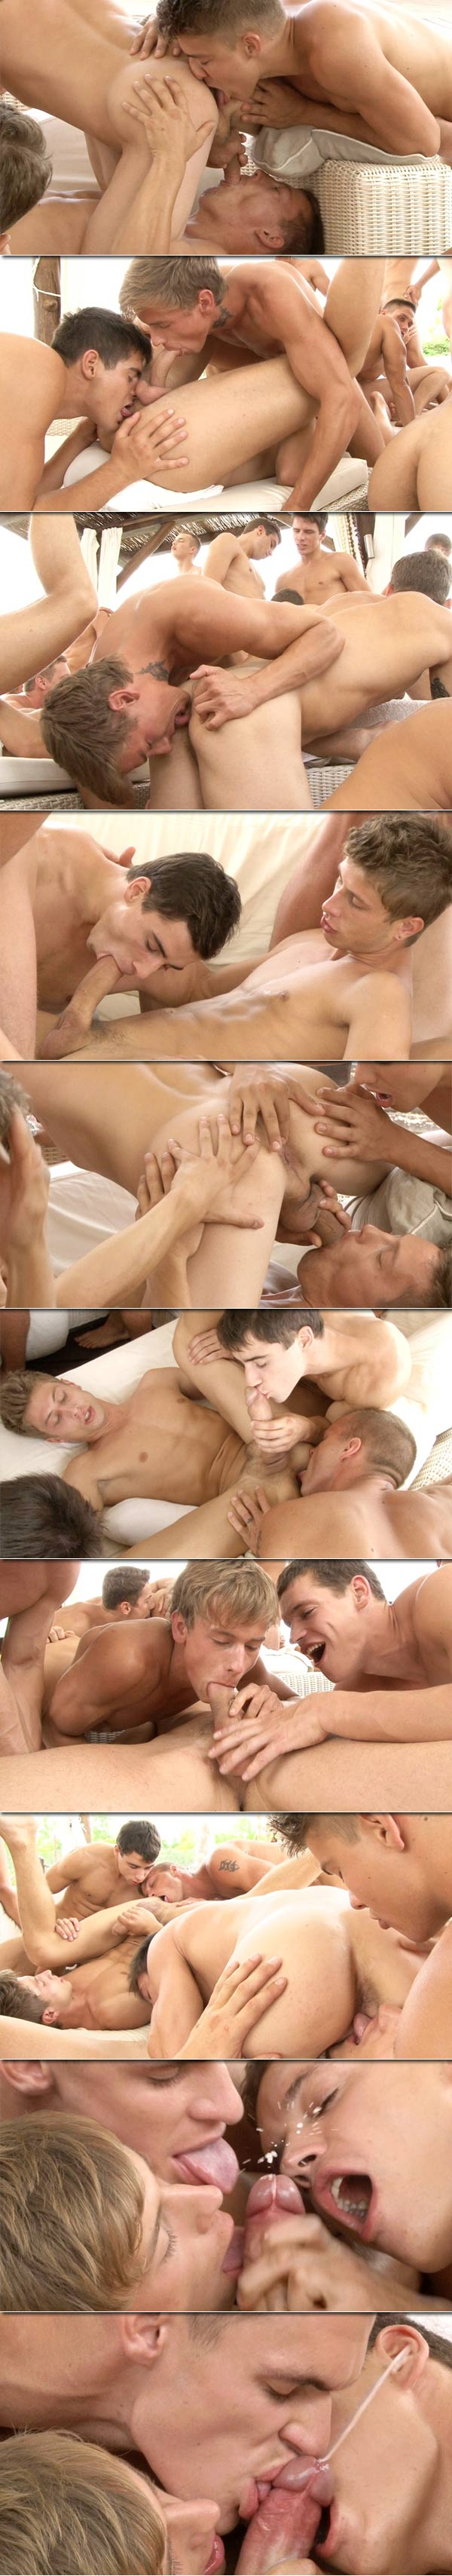 Orgy (24 Boys In Blow Job Action) (Part 3) at BelAmiOnline.com